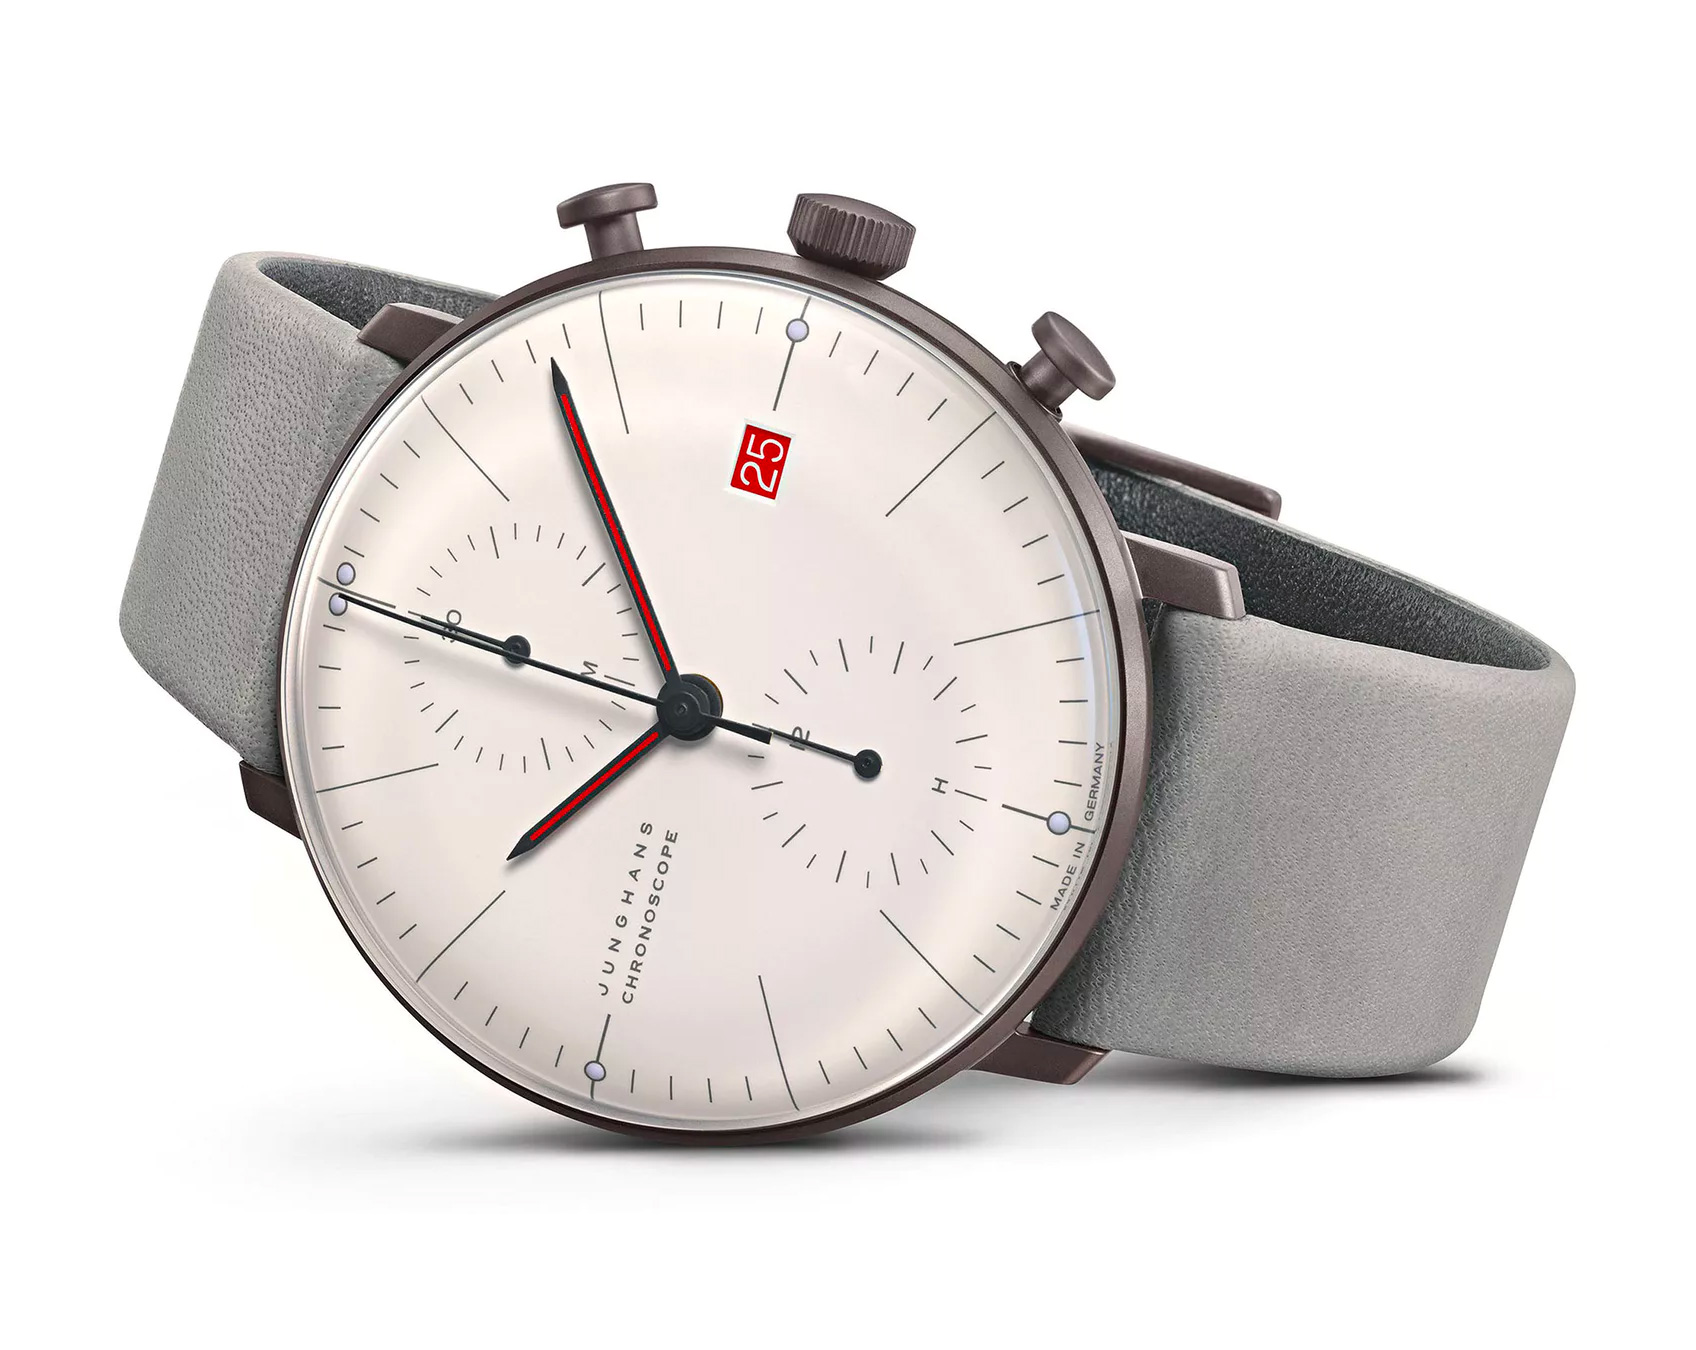 Junghans Celebrates 100 Years of Bauhaus with Classic Chronograph at werd.com